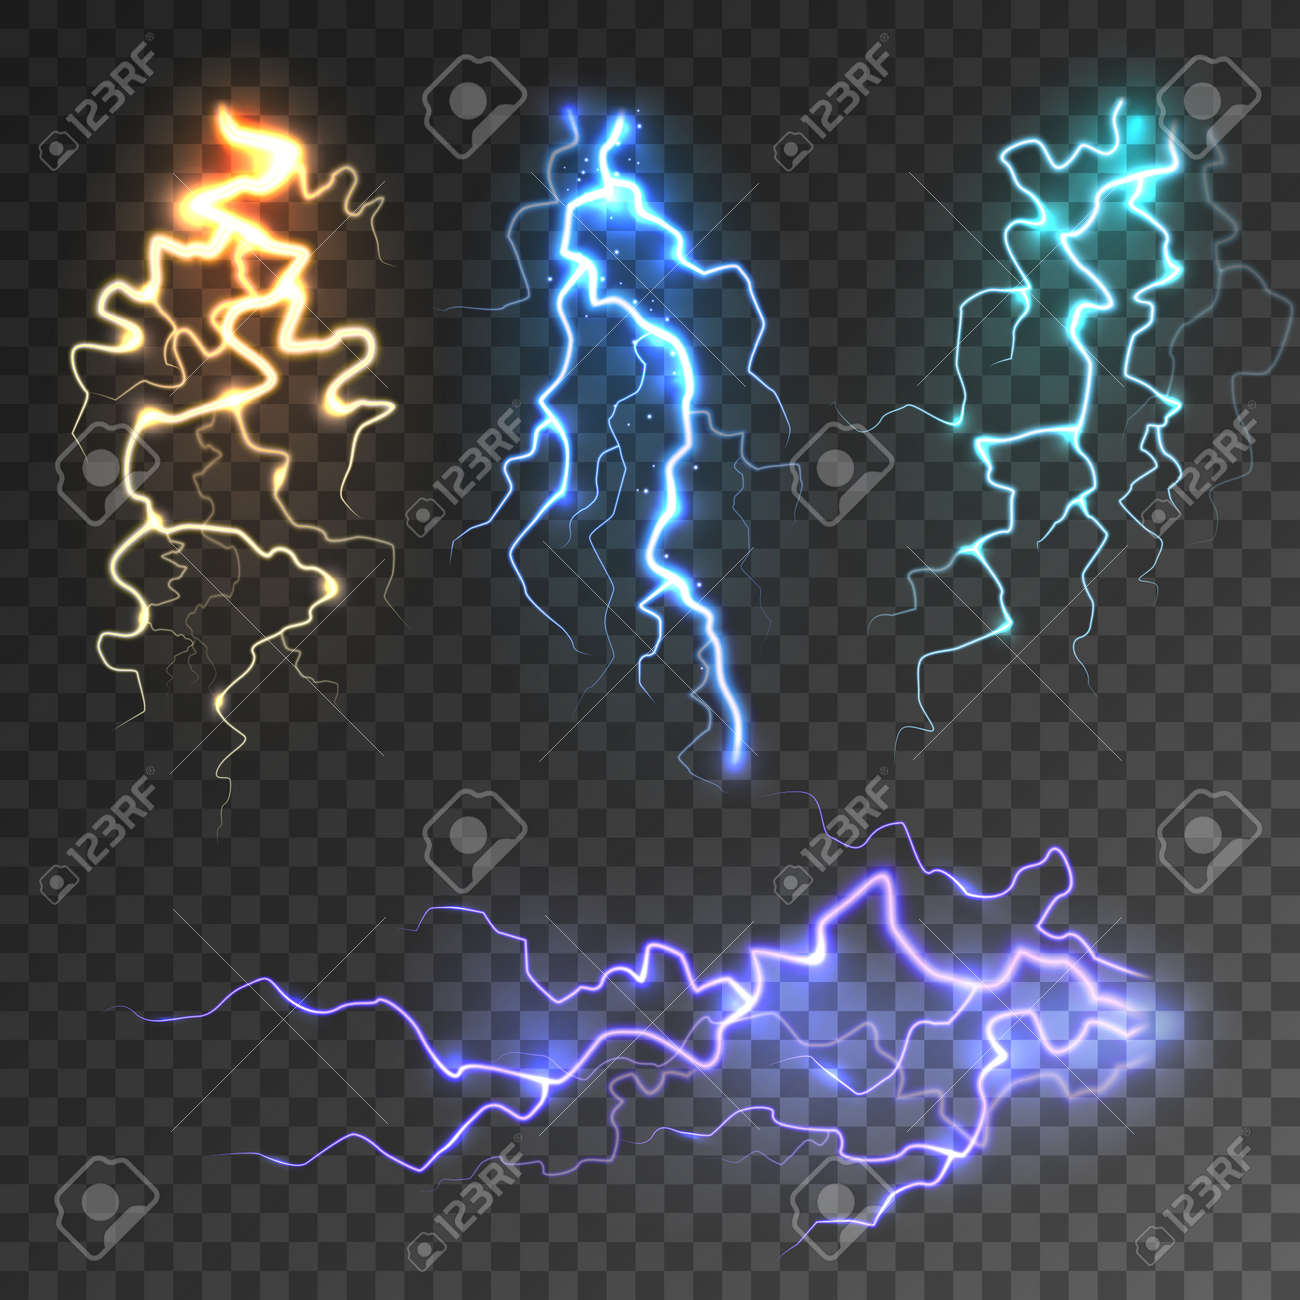 Realistic lightning collection on transparent background. Thunderstorm and lightning bolt. Sparks of light. Stormy weather effect. Vector illustration. - 166628779